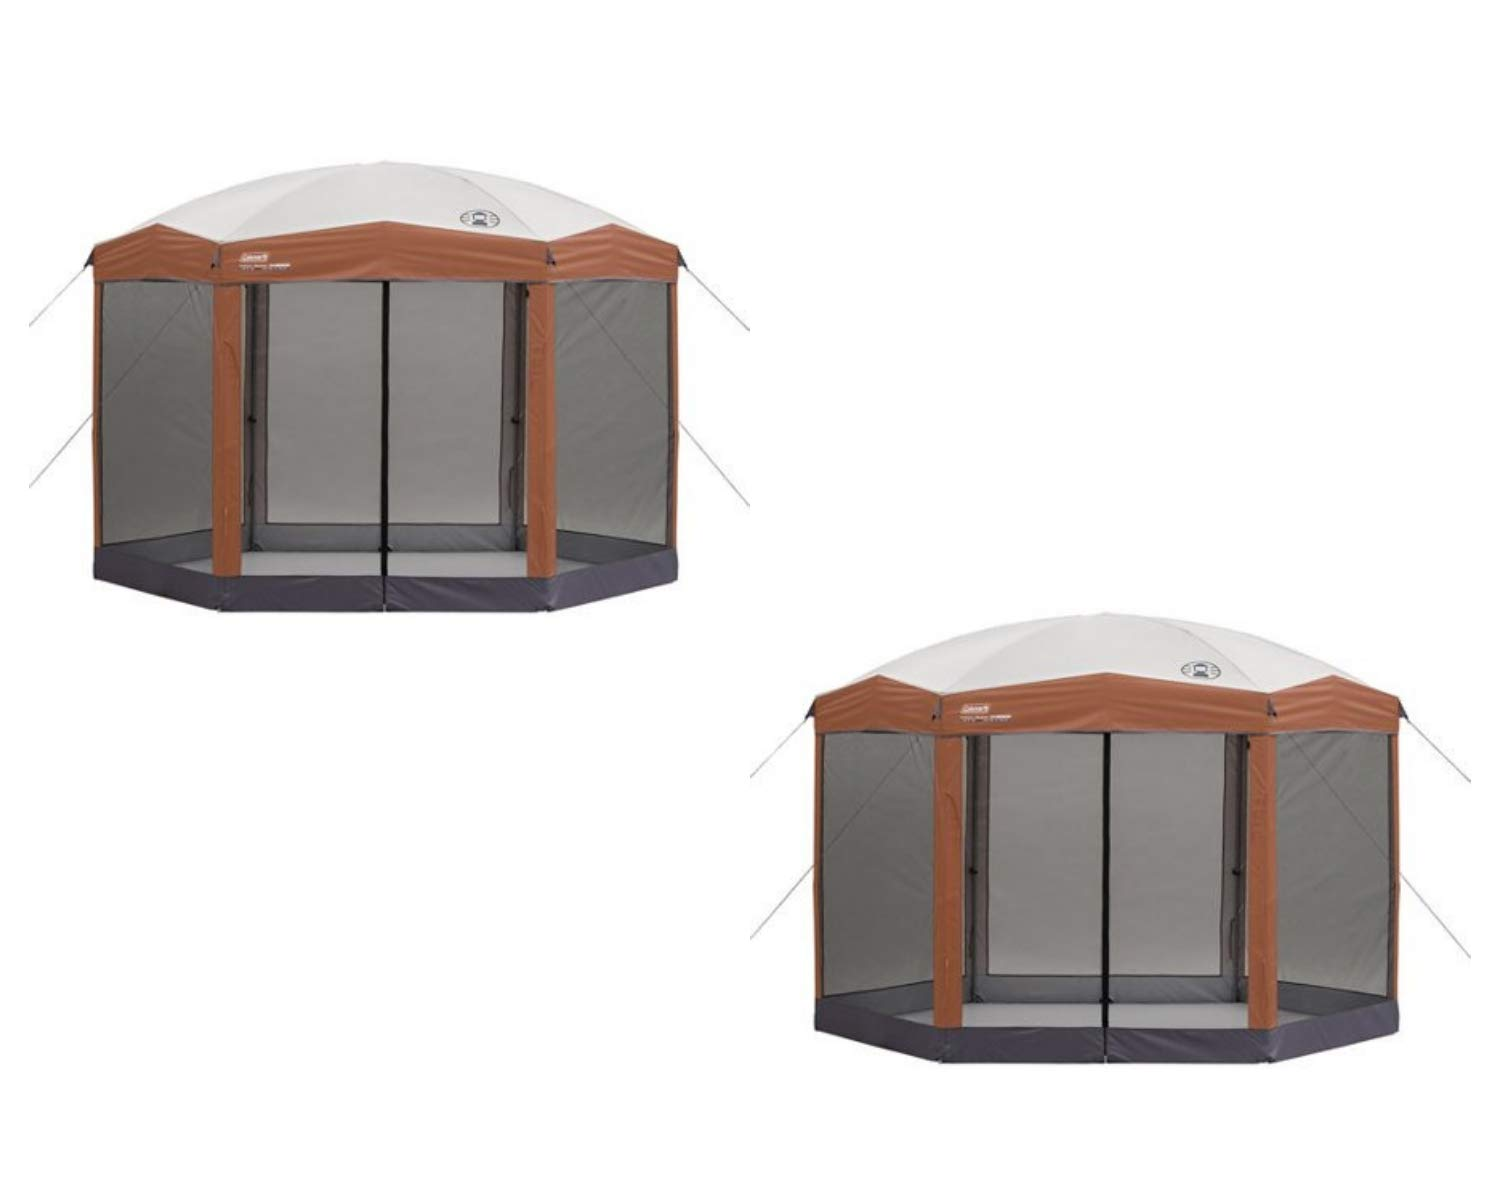 Coleman Screened Canopy Tent with Instant Setup | Back Home Screenhouse Sets Up in 60 Seconds (Brown, 2 Count)